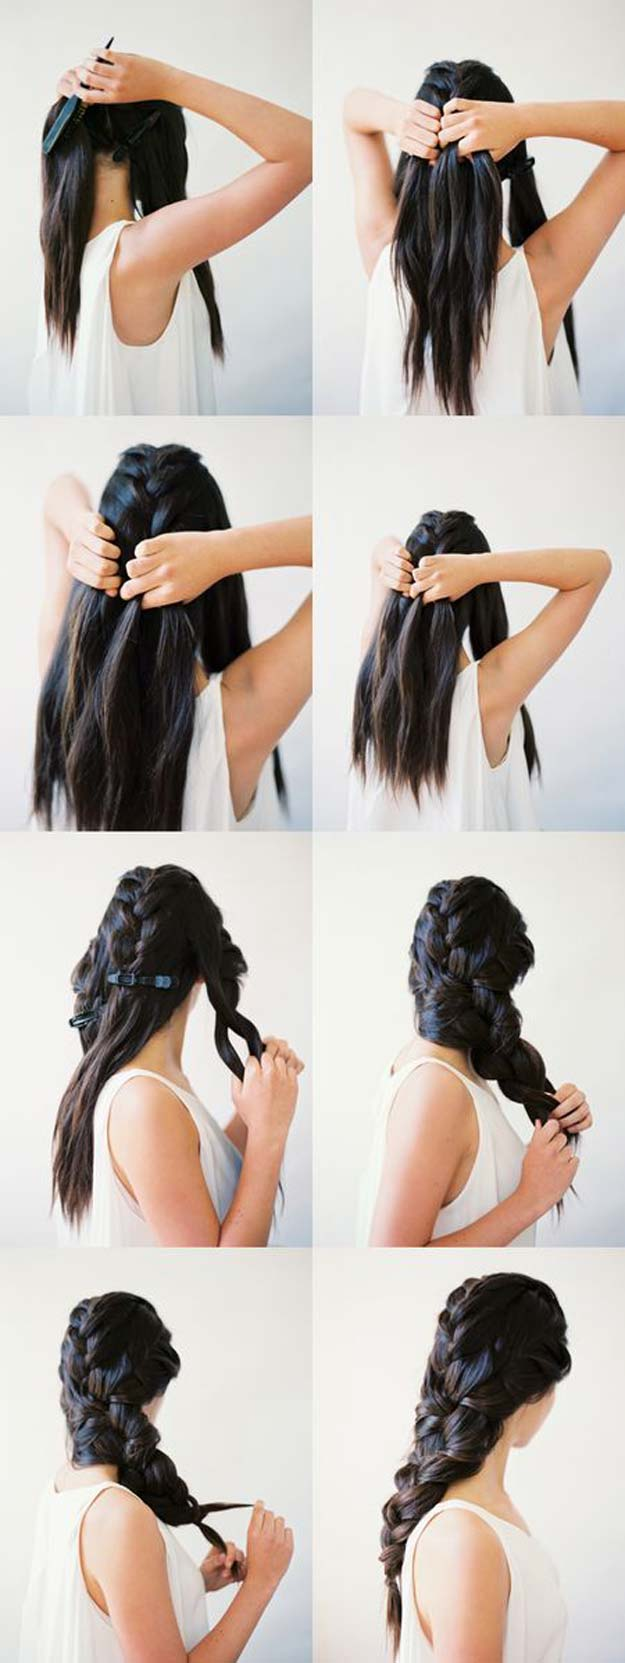 11 DIY Cool Easy Hairstyles That Real People Can Do at Home - DIY